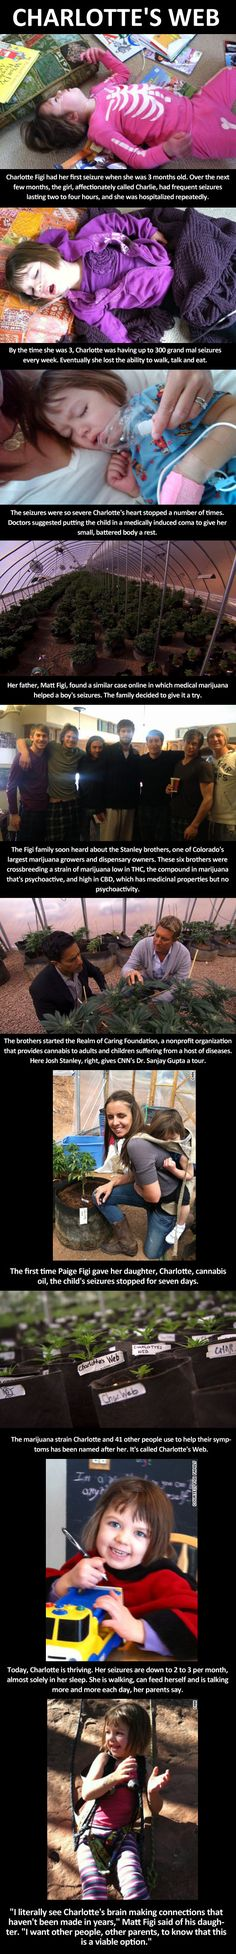 Charlotte's Web. I cannot pin this enough! Marijuana has a place in health care!